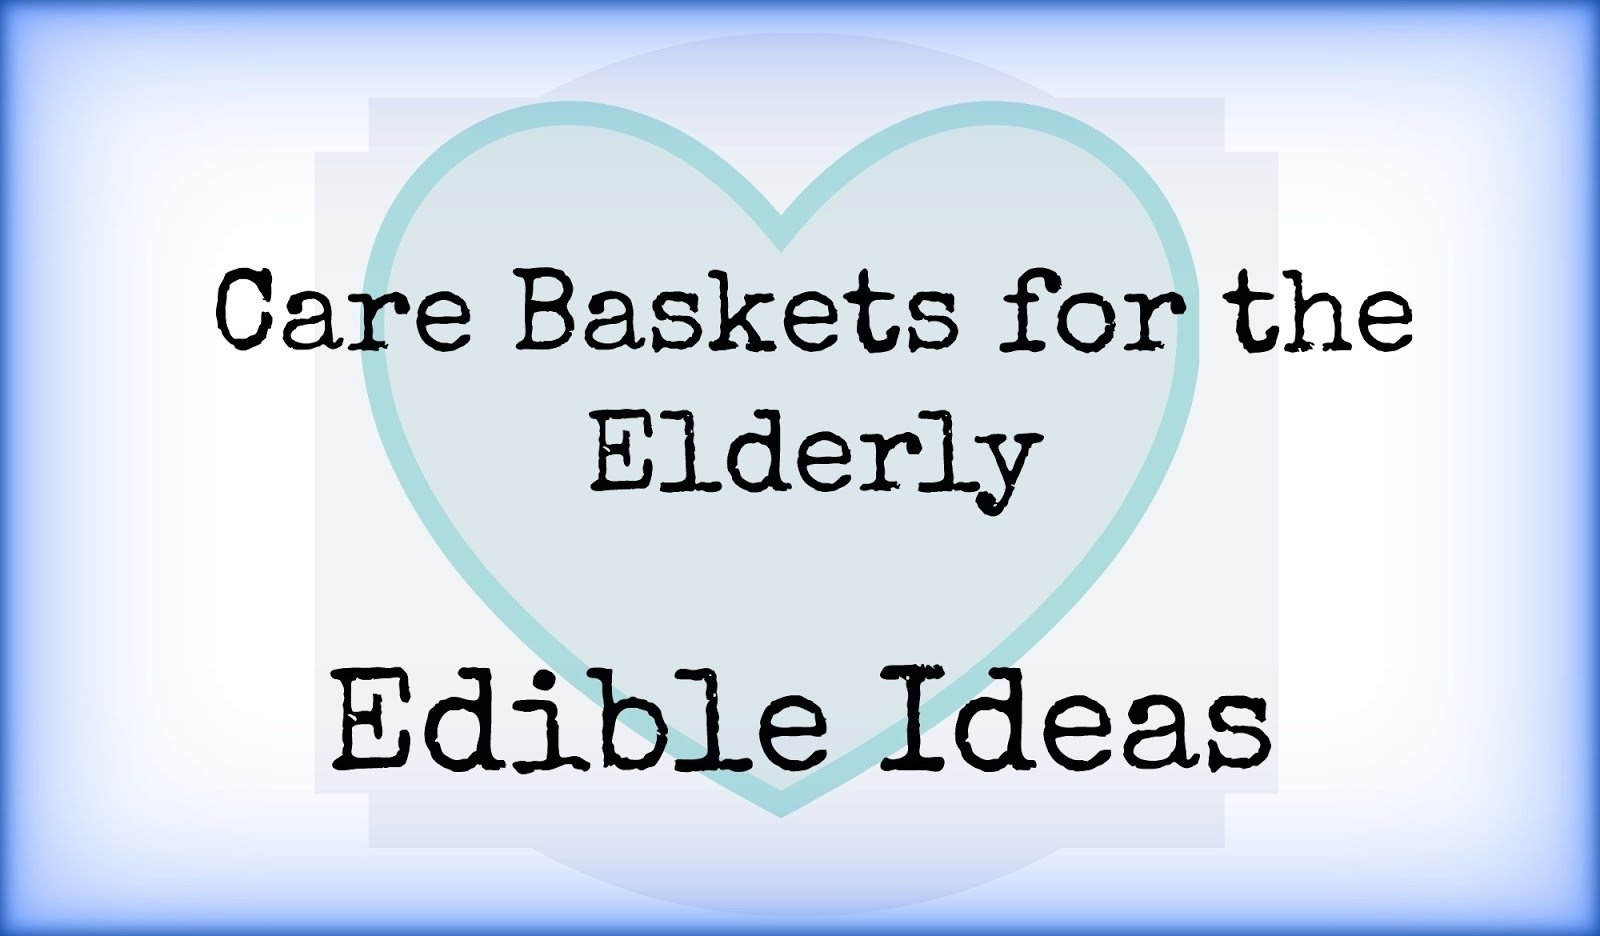 10 Pretty Gift Ideas For Senior Citizens care baskets for the elderly edible ideas elder care issues 2021